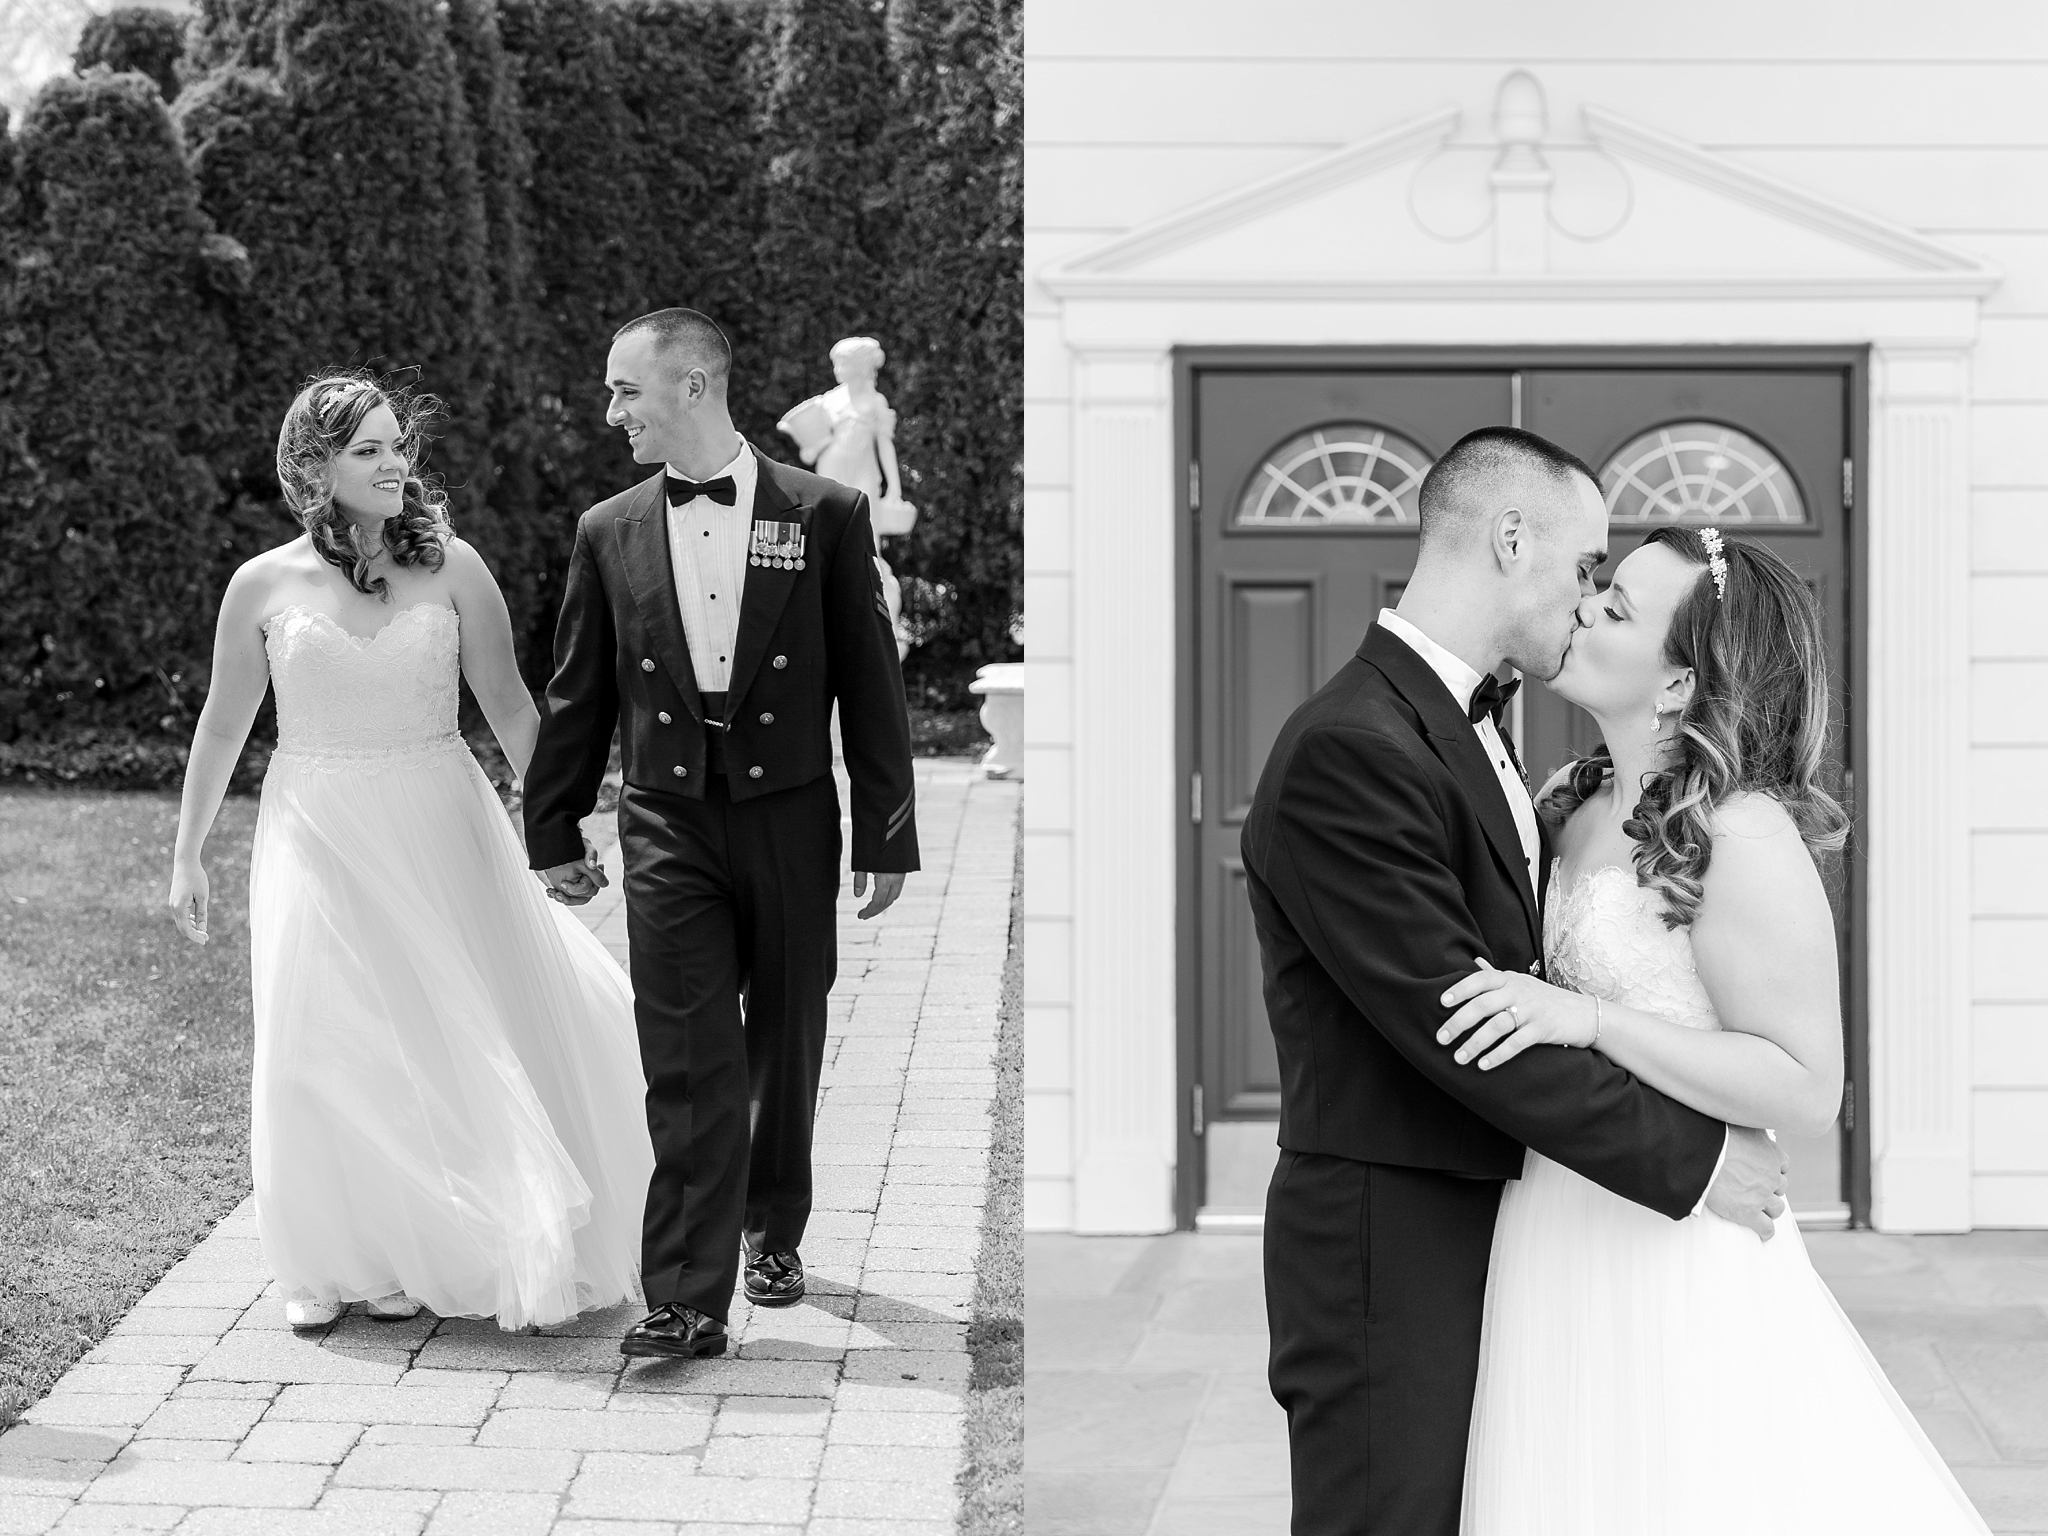 romantic-artful-candid-wedding-photos-in-st-clair-shores-at-the-white-house-wedding-chapel-by-courtney-carolyn-photography_0022.jpg